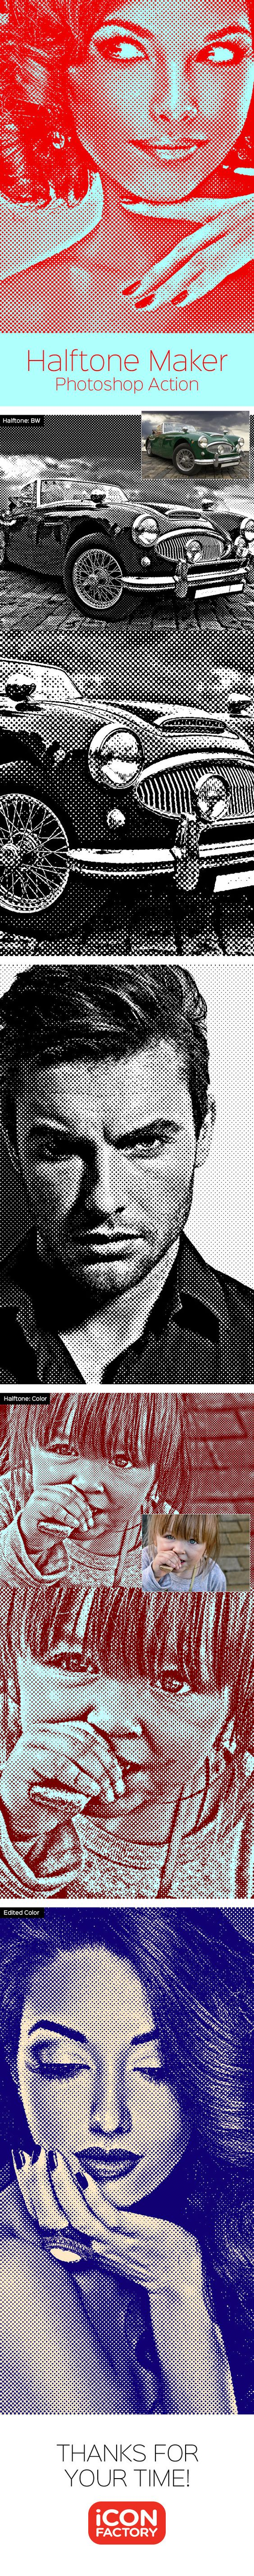 Halftone Maker - Photoshop Action #photoeffects #actions Download: http://graphicriver.net/item/-halftone-maker-photoshop-action/9612903?ref=ksioks